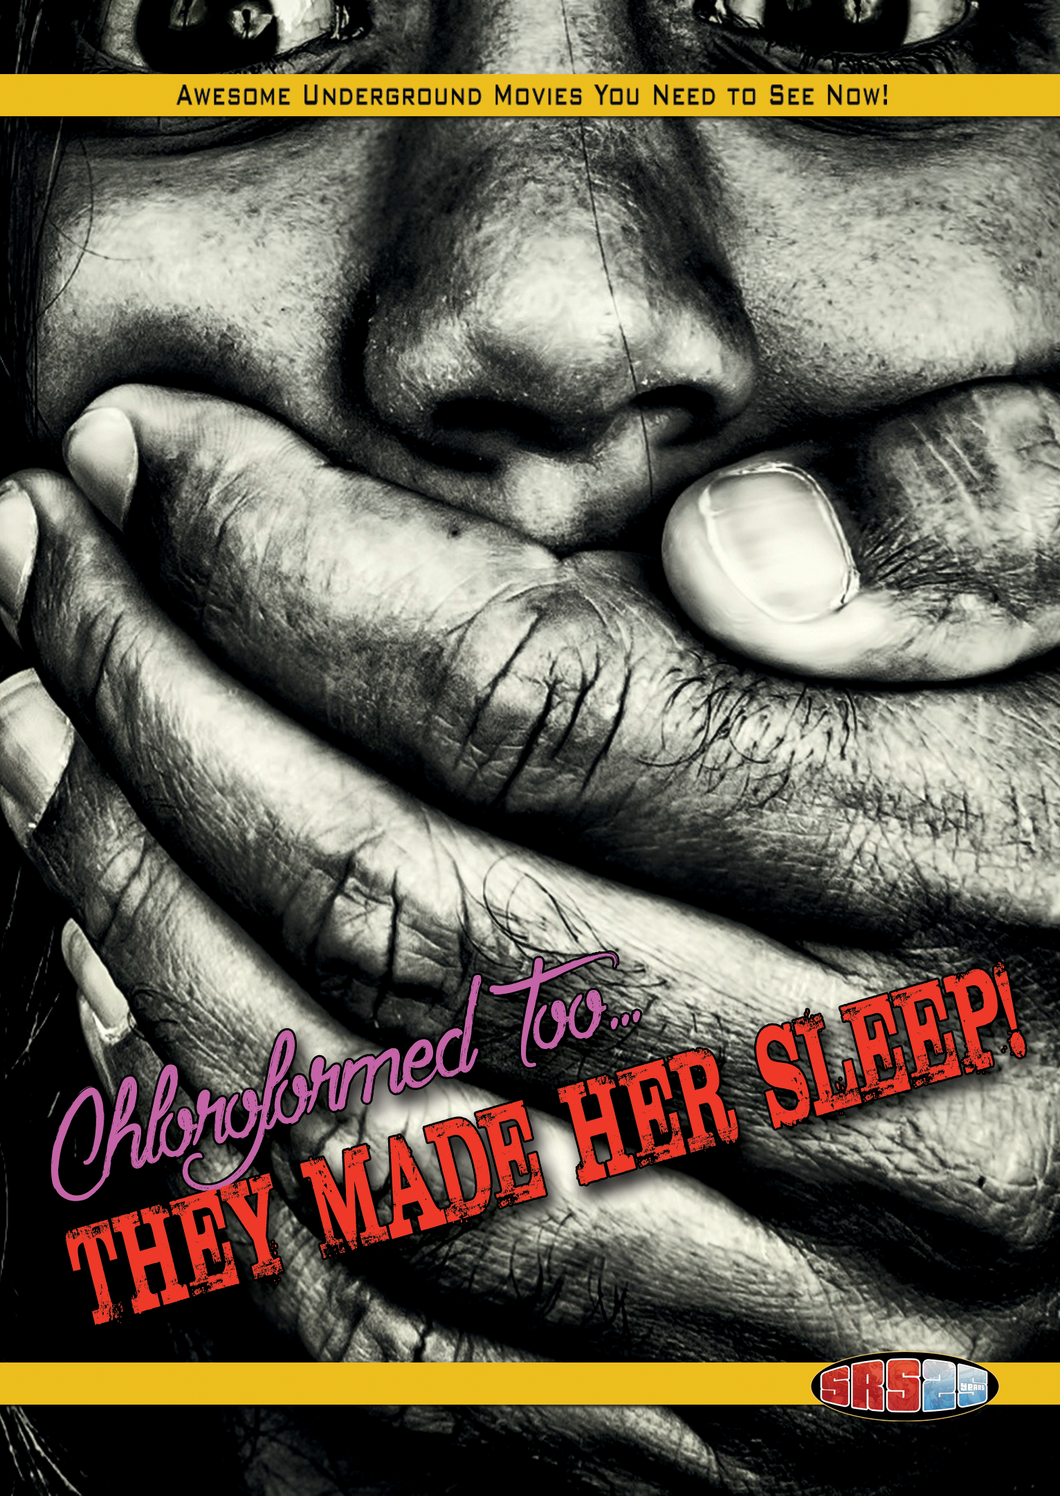 Chloroformed Too: They Made Her Sleep DVD